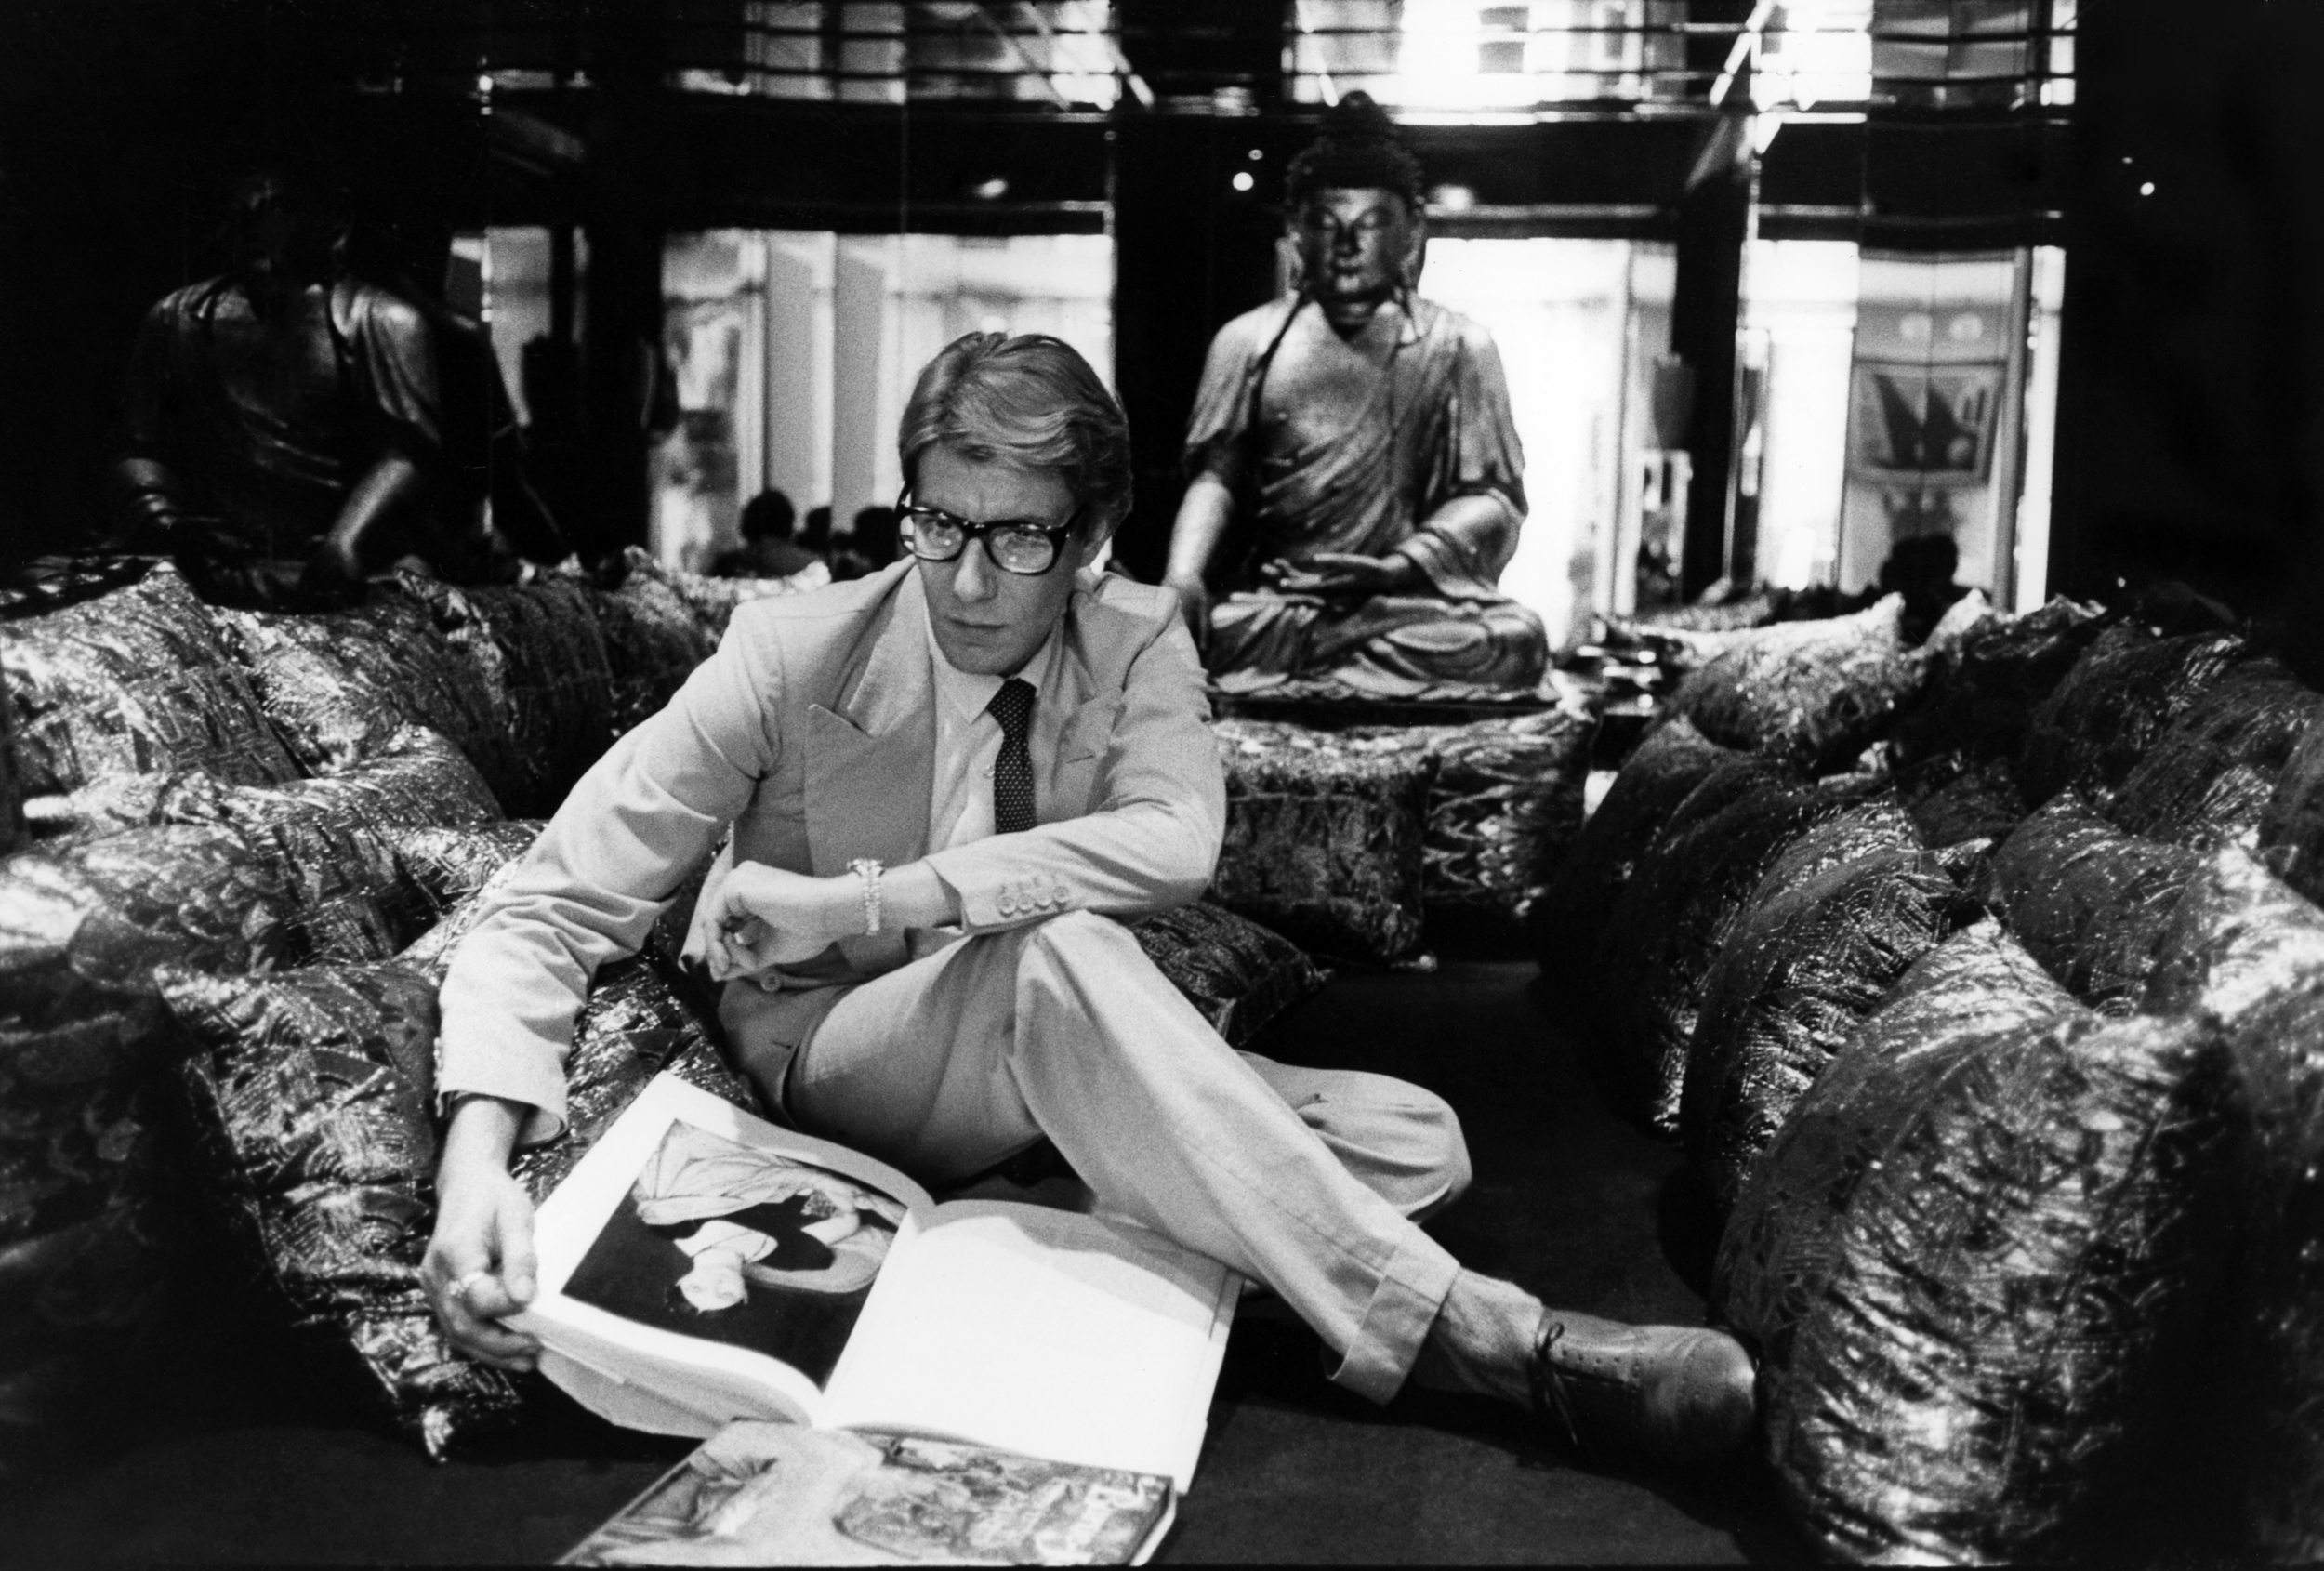 Yves Saint Laurent at home, 55 rue de Babylone, Paris, 1977.